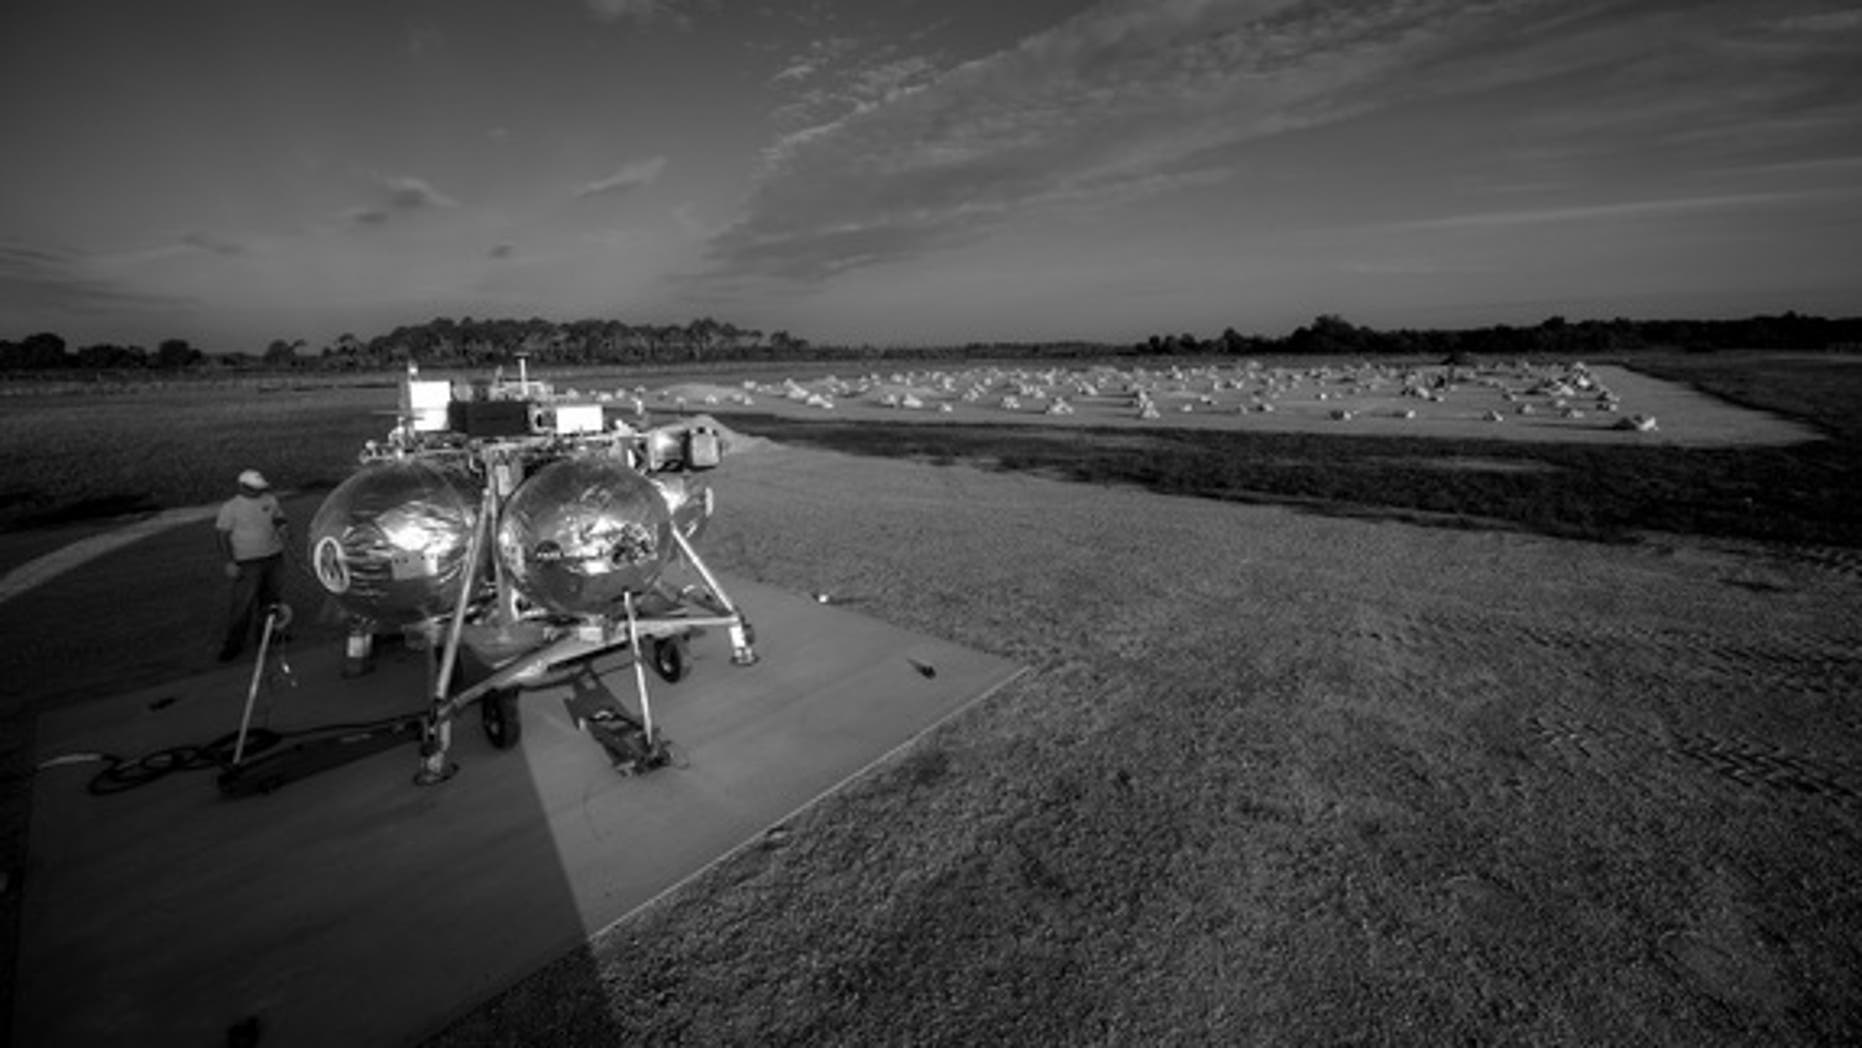 NASA's Morpheus lander prototype and the new hazard field at Kennedy Space Center in Florida are seen in this view. Image released August 2, 2012.